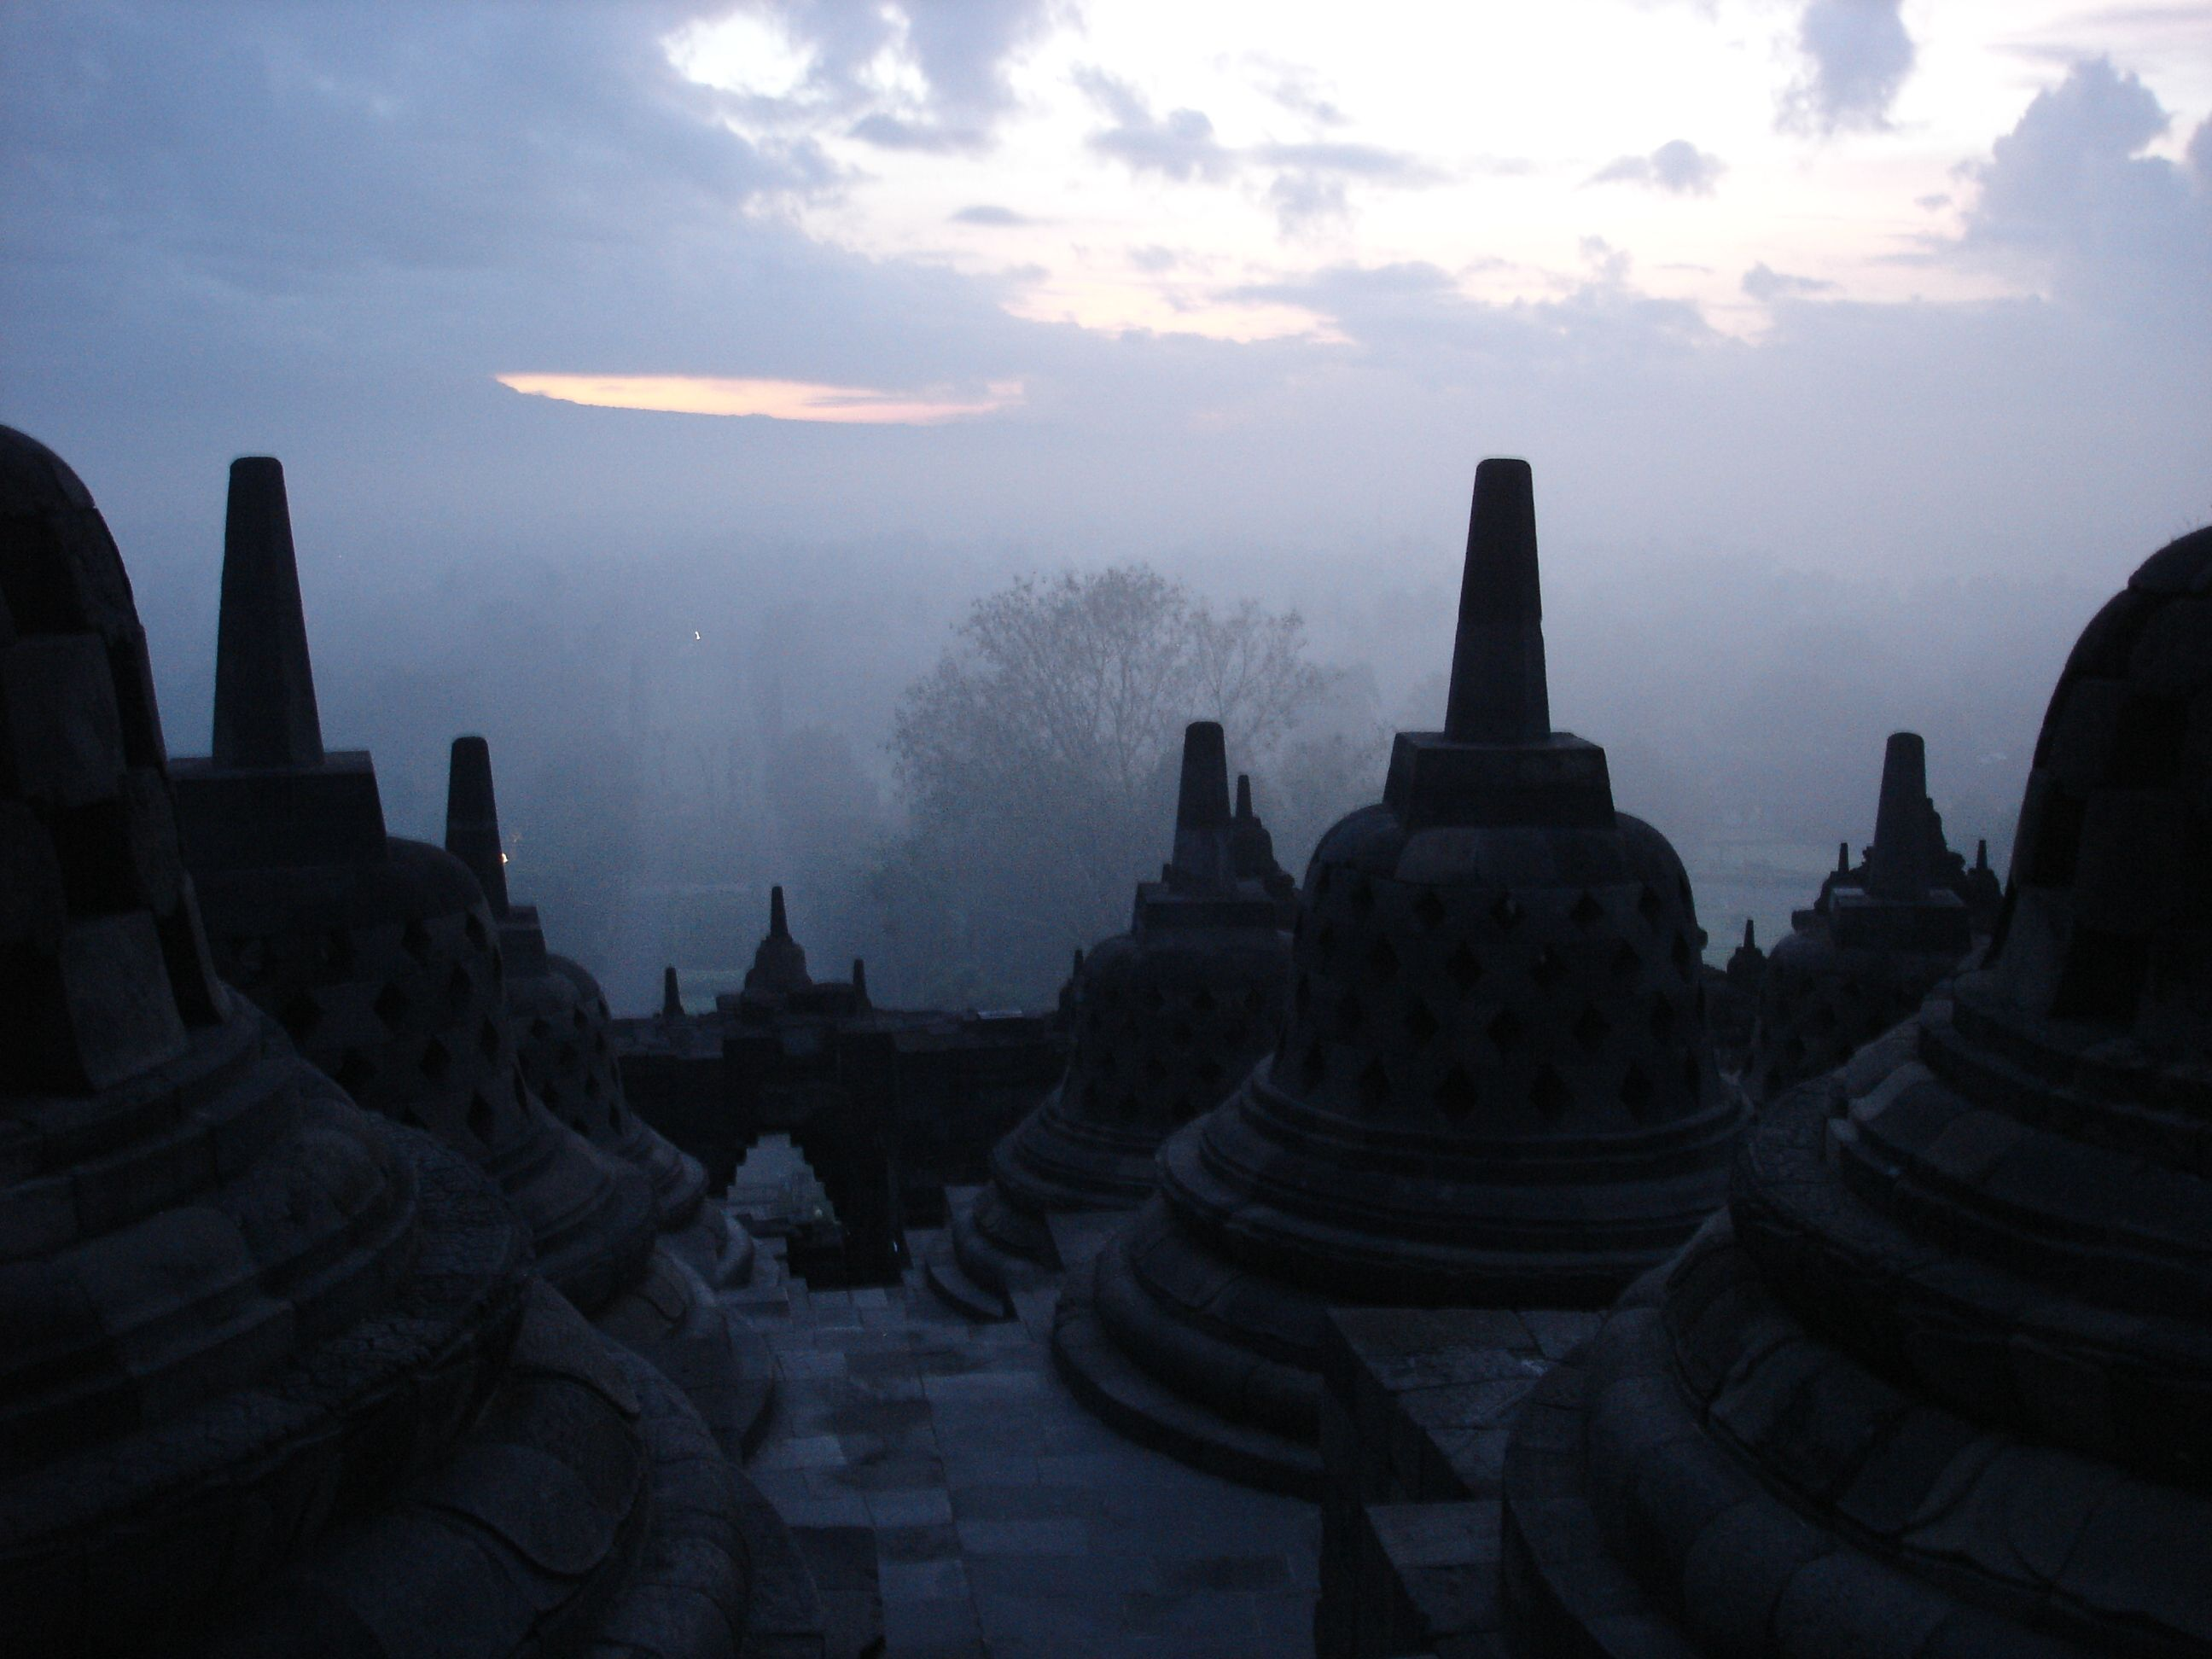 The first light of dawn over Borobodur